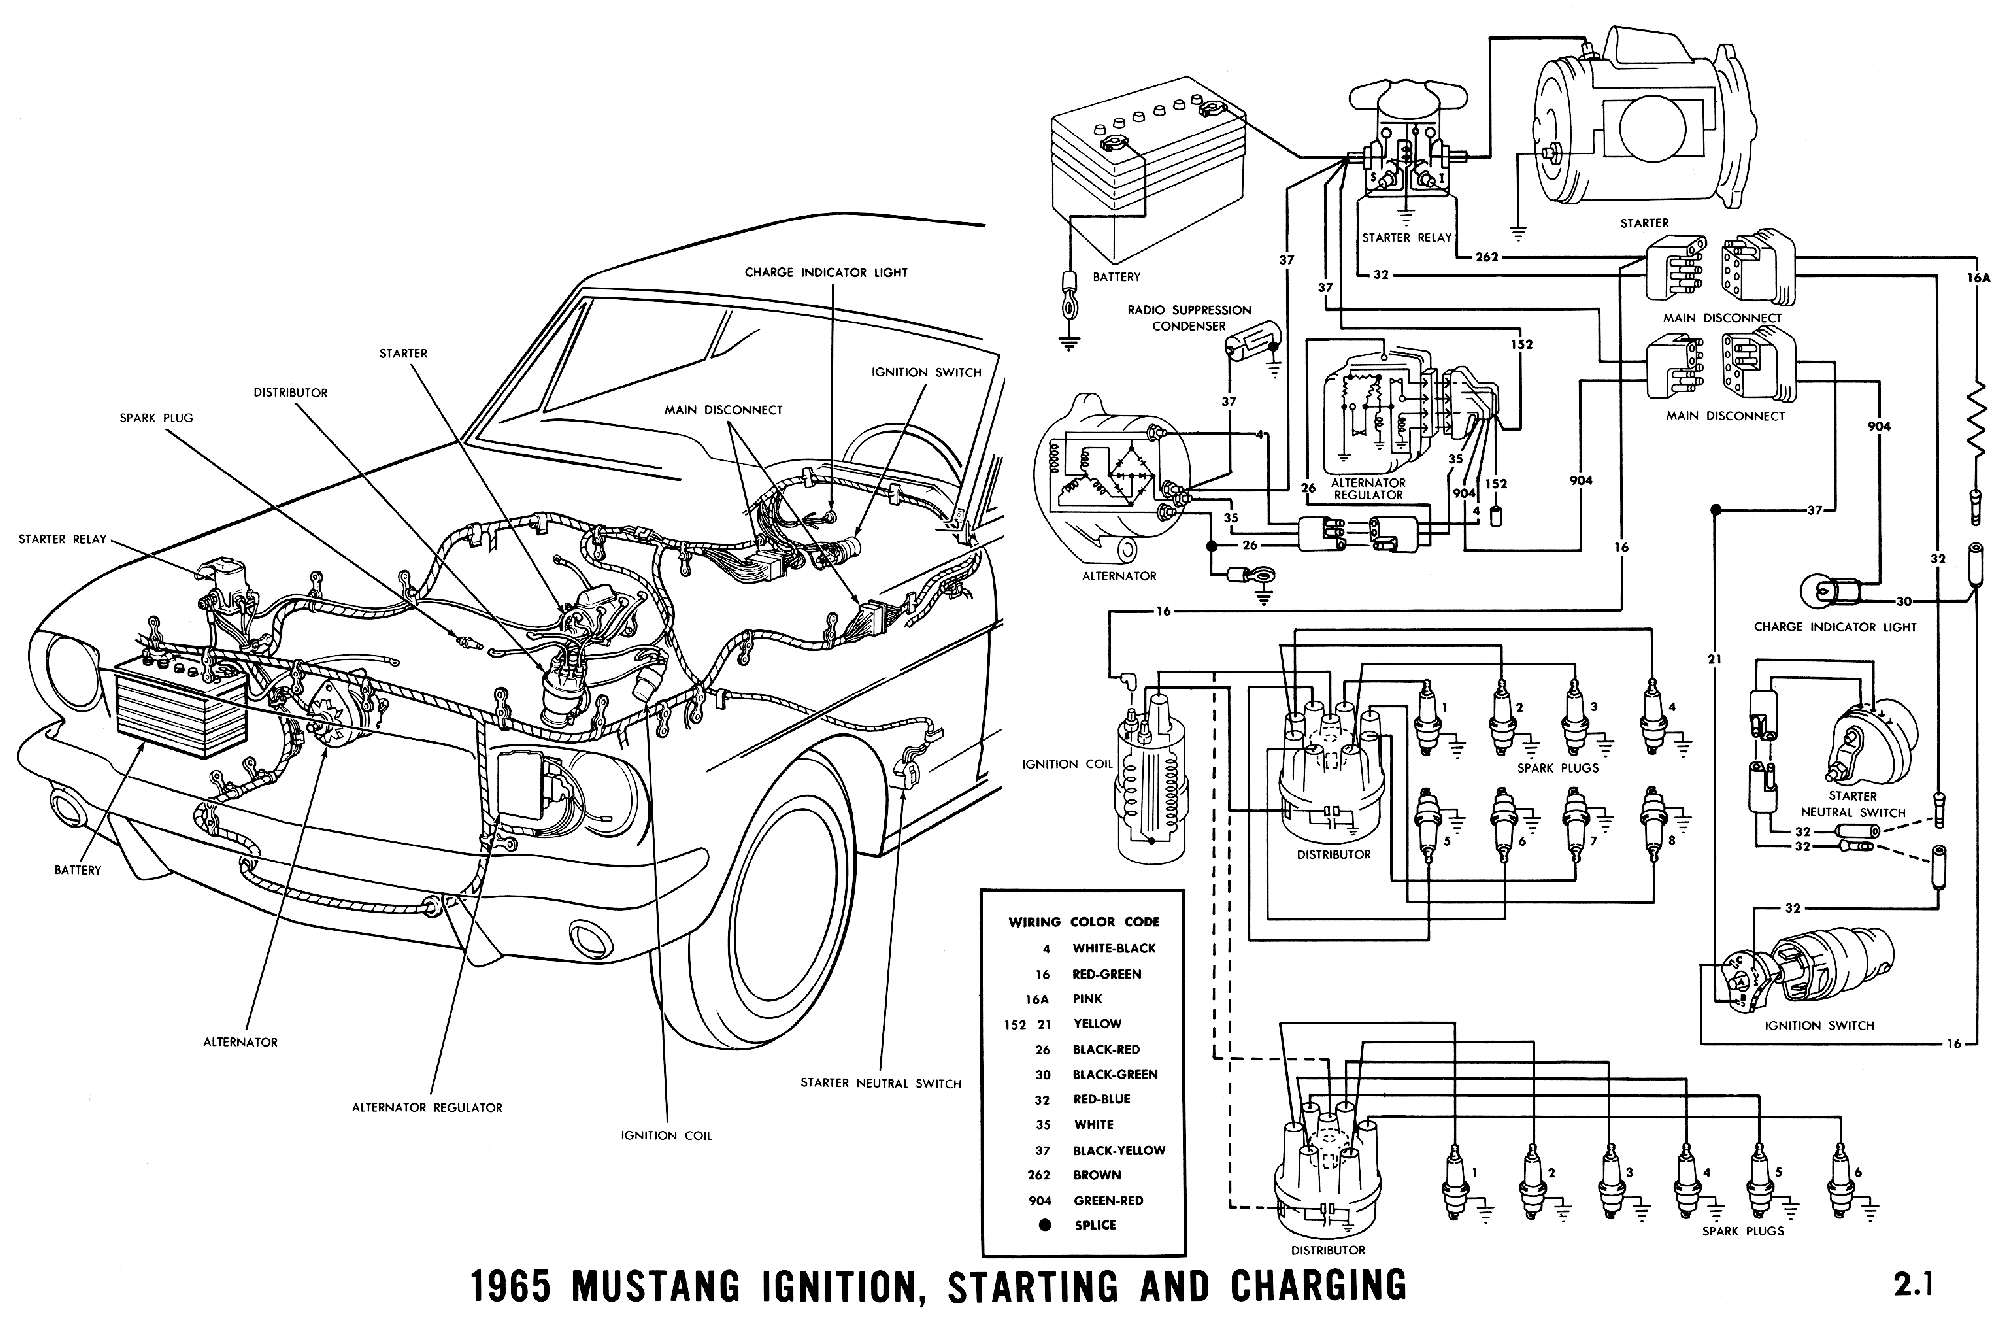 65 Ford Mustang Neutral Safety Wiring Not Lossing Diagram 1968 For Light 1965 Diagrams Average Joe Restoration Rh Averagejoerestoration Com Schematic